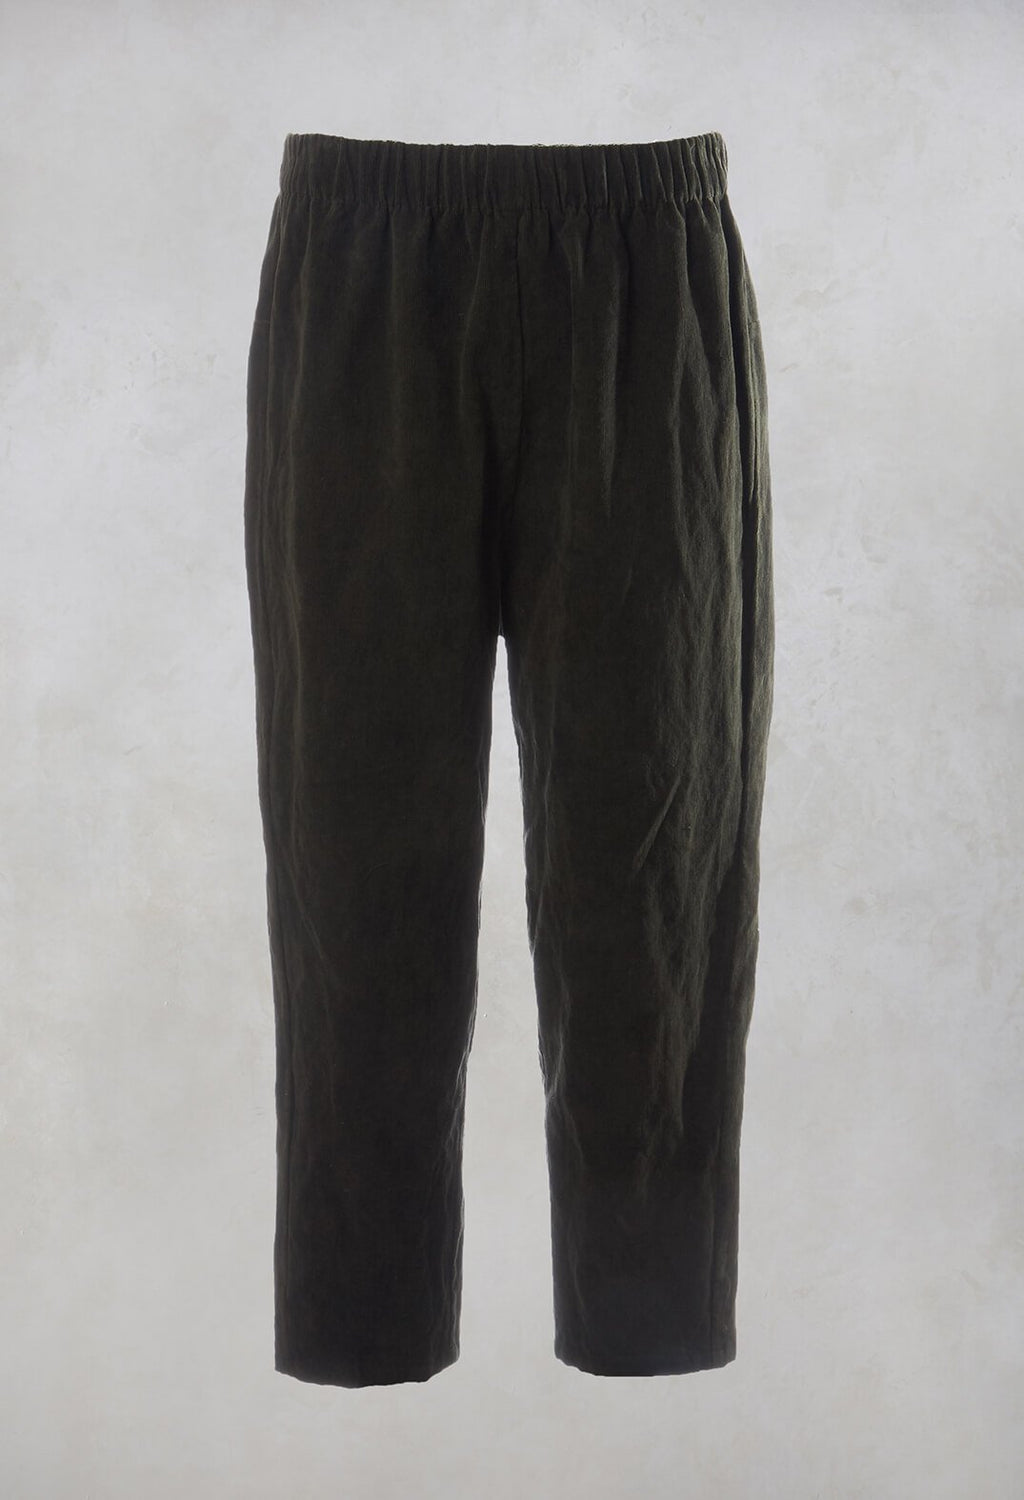 Corduroy Peg Trousers in Bosco